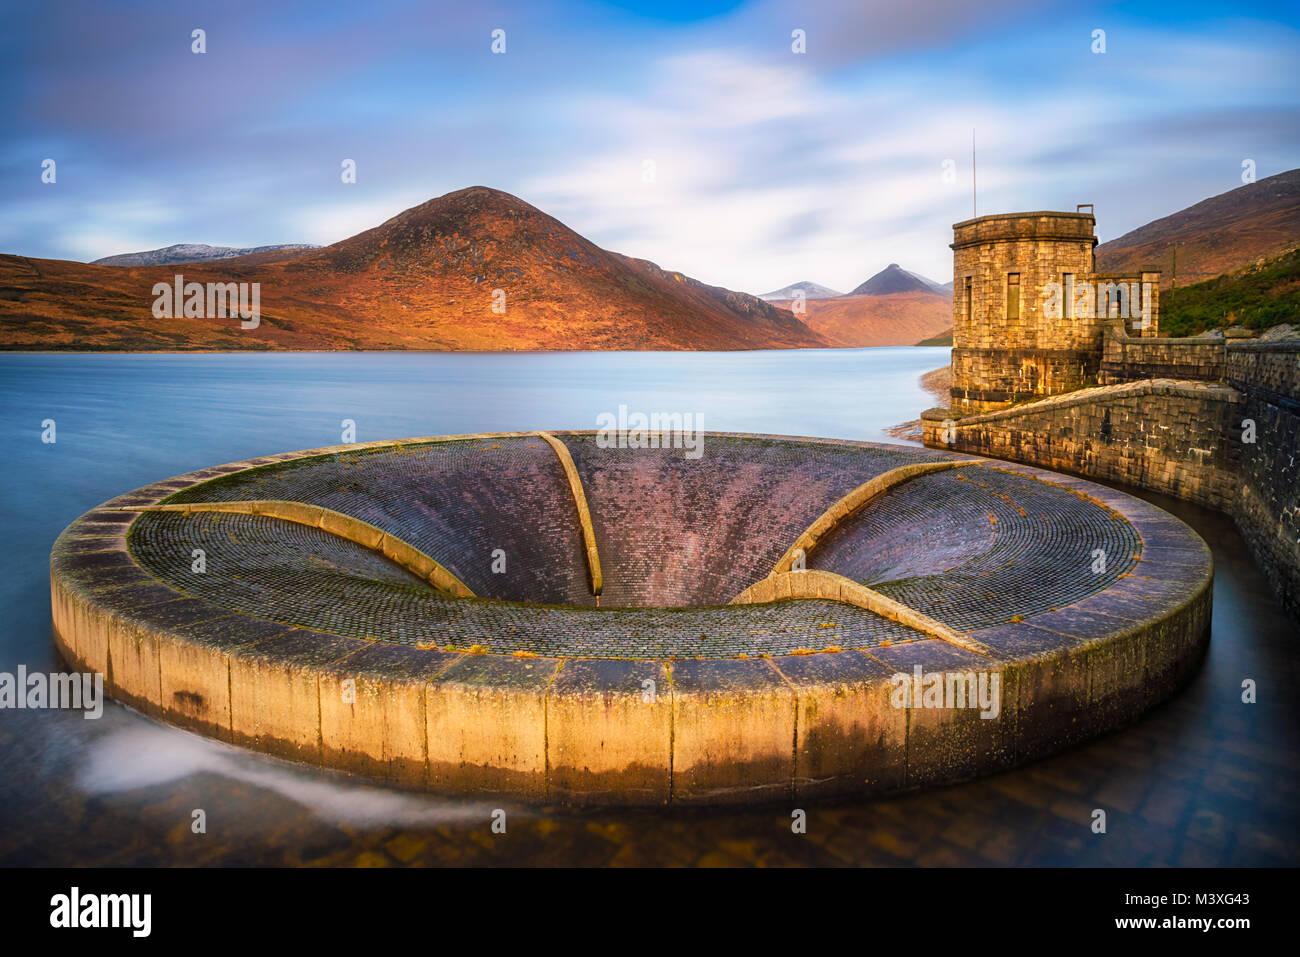 Silent Vally at Co. Down - Northern Ireland - Stock Image